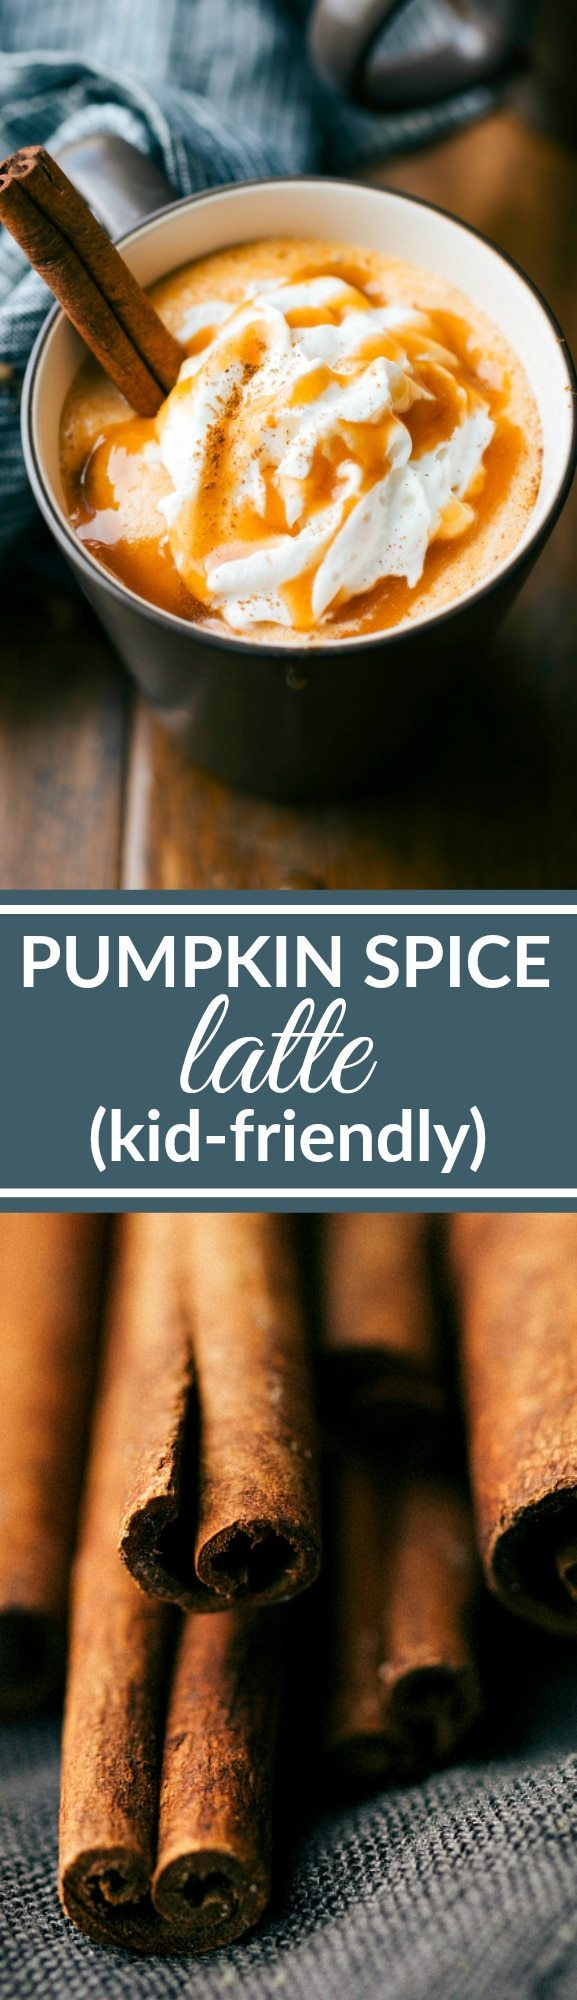 A delicious and easy to make kid-friendly pumpkin spice